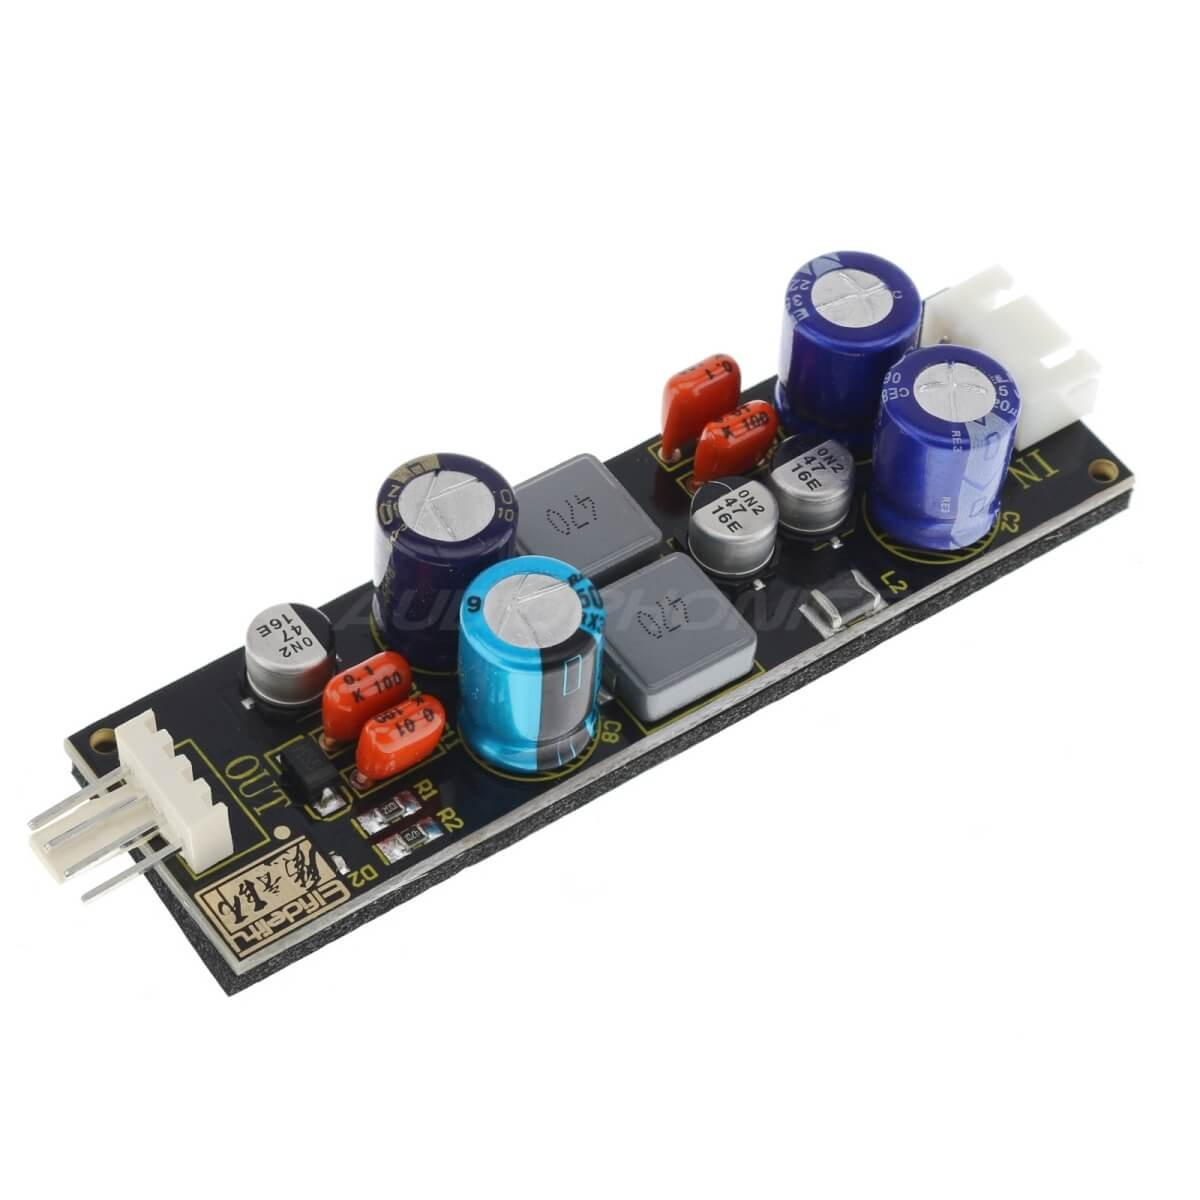 ELFIDELITY AXF-86 PRO Power filter for PC 4 pin Connector